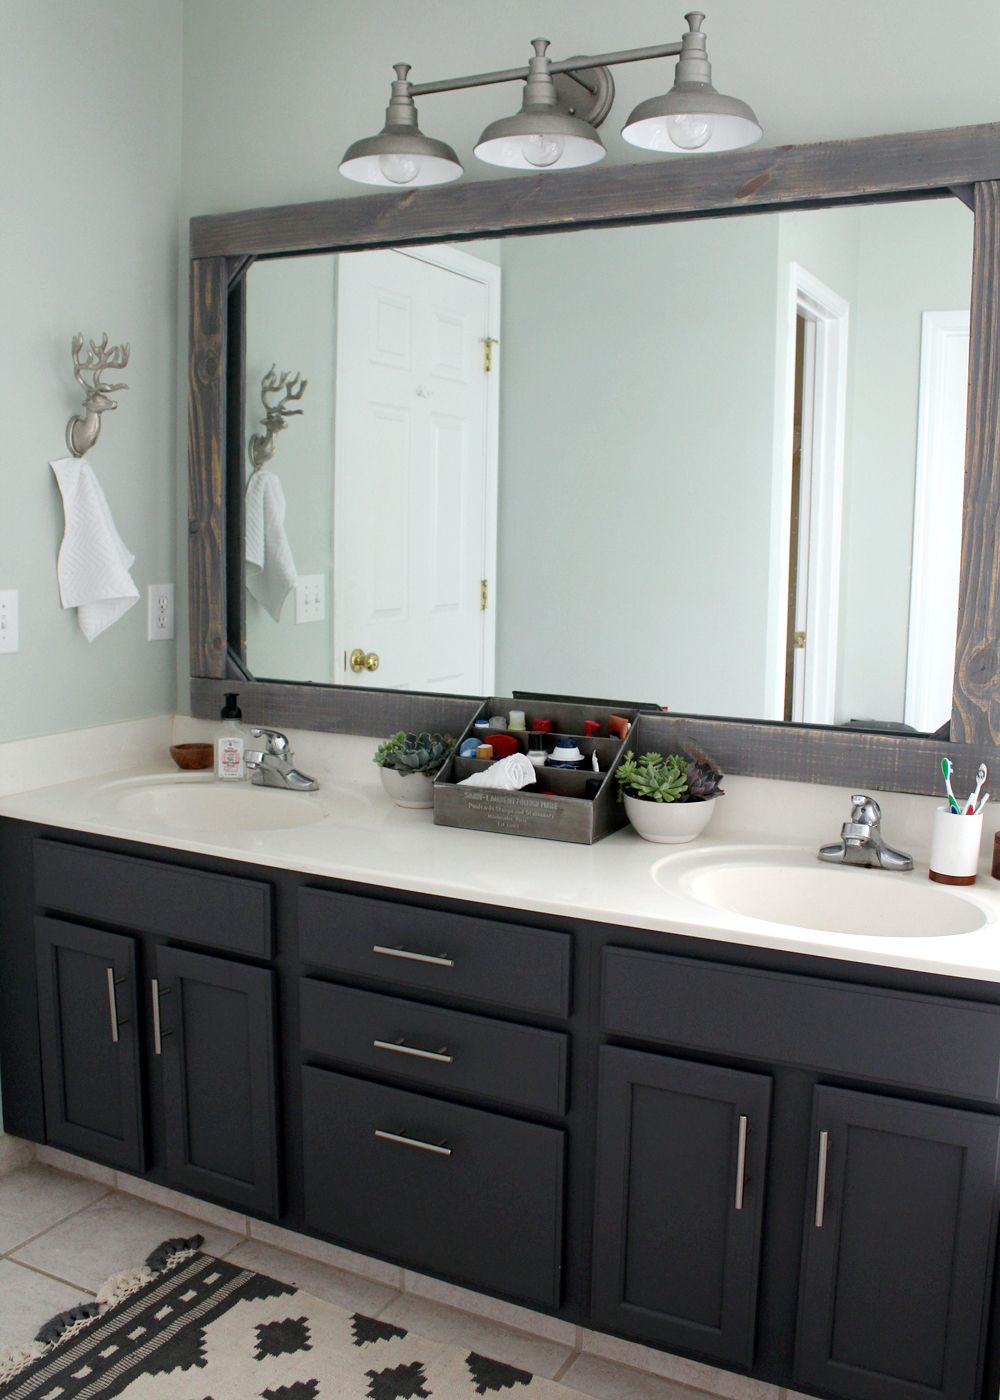 Master Bathroom Remodel Pinterest Master Bathrooms - Bathroom remodel on a budget pictures